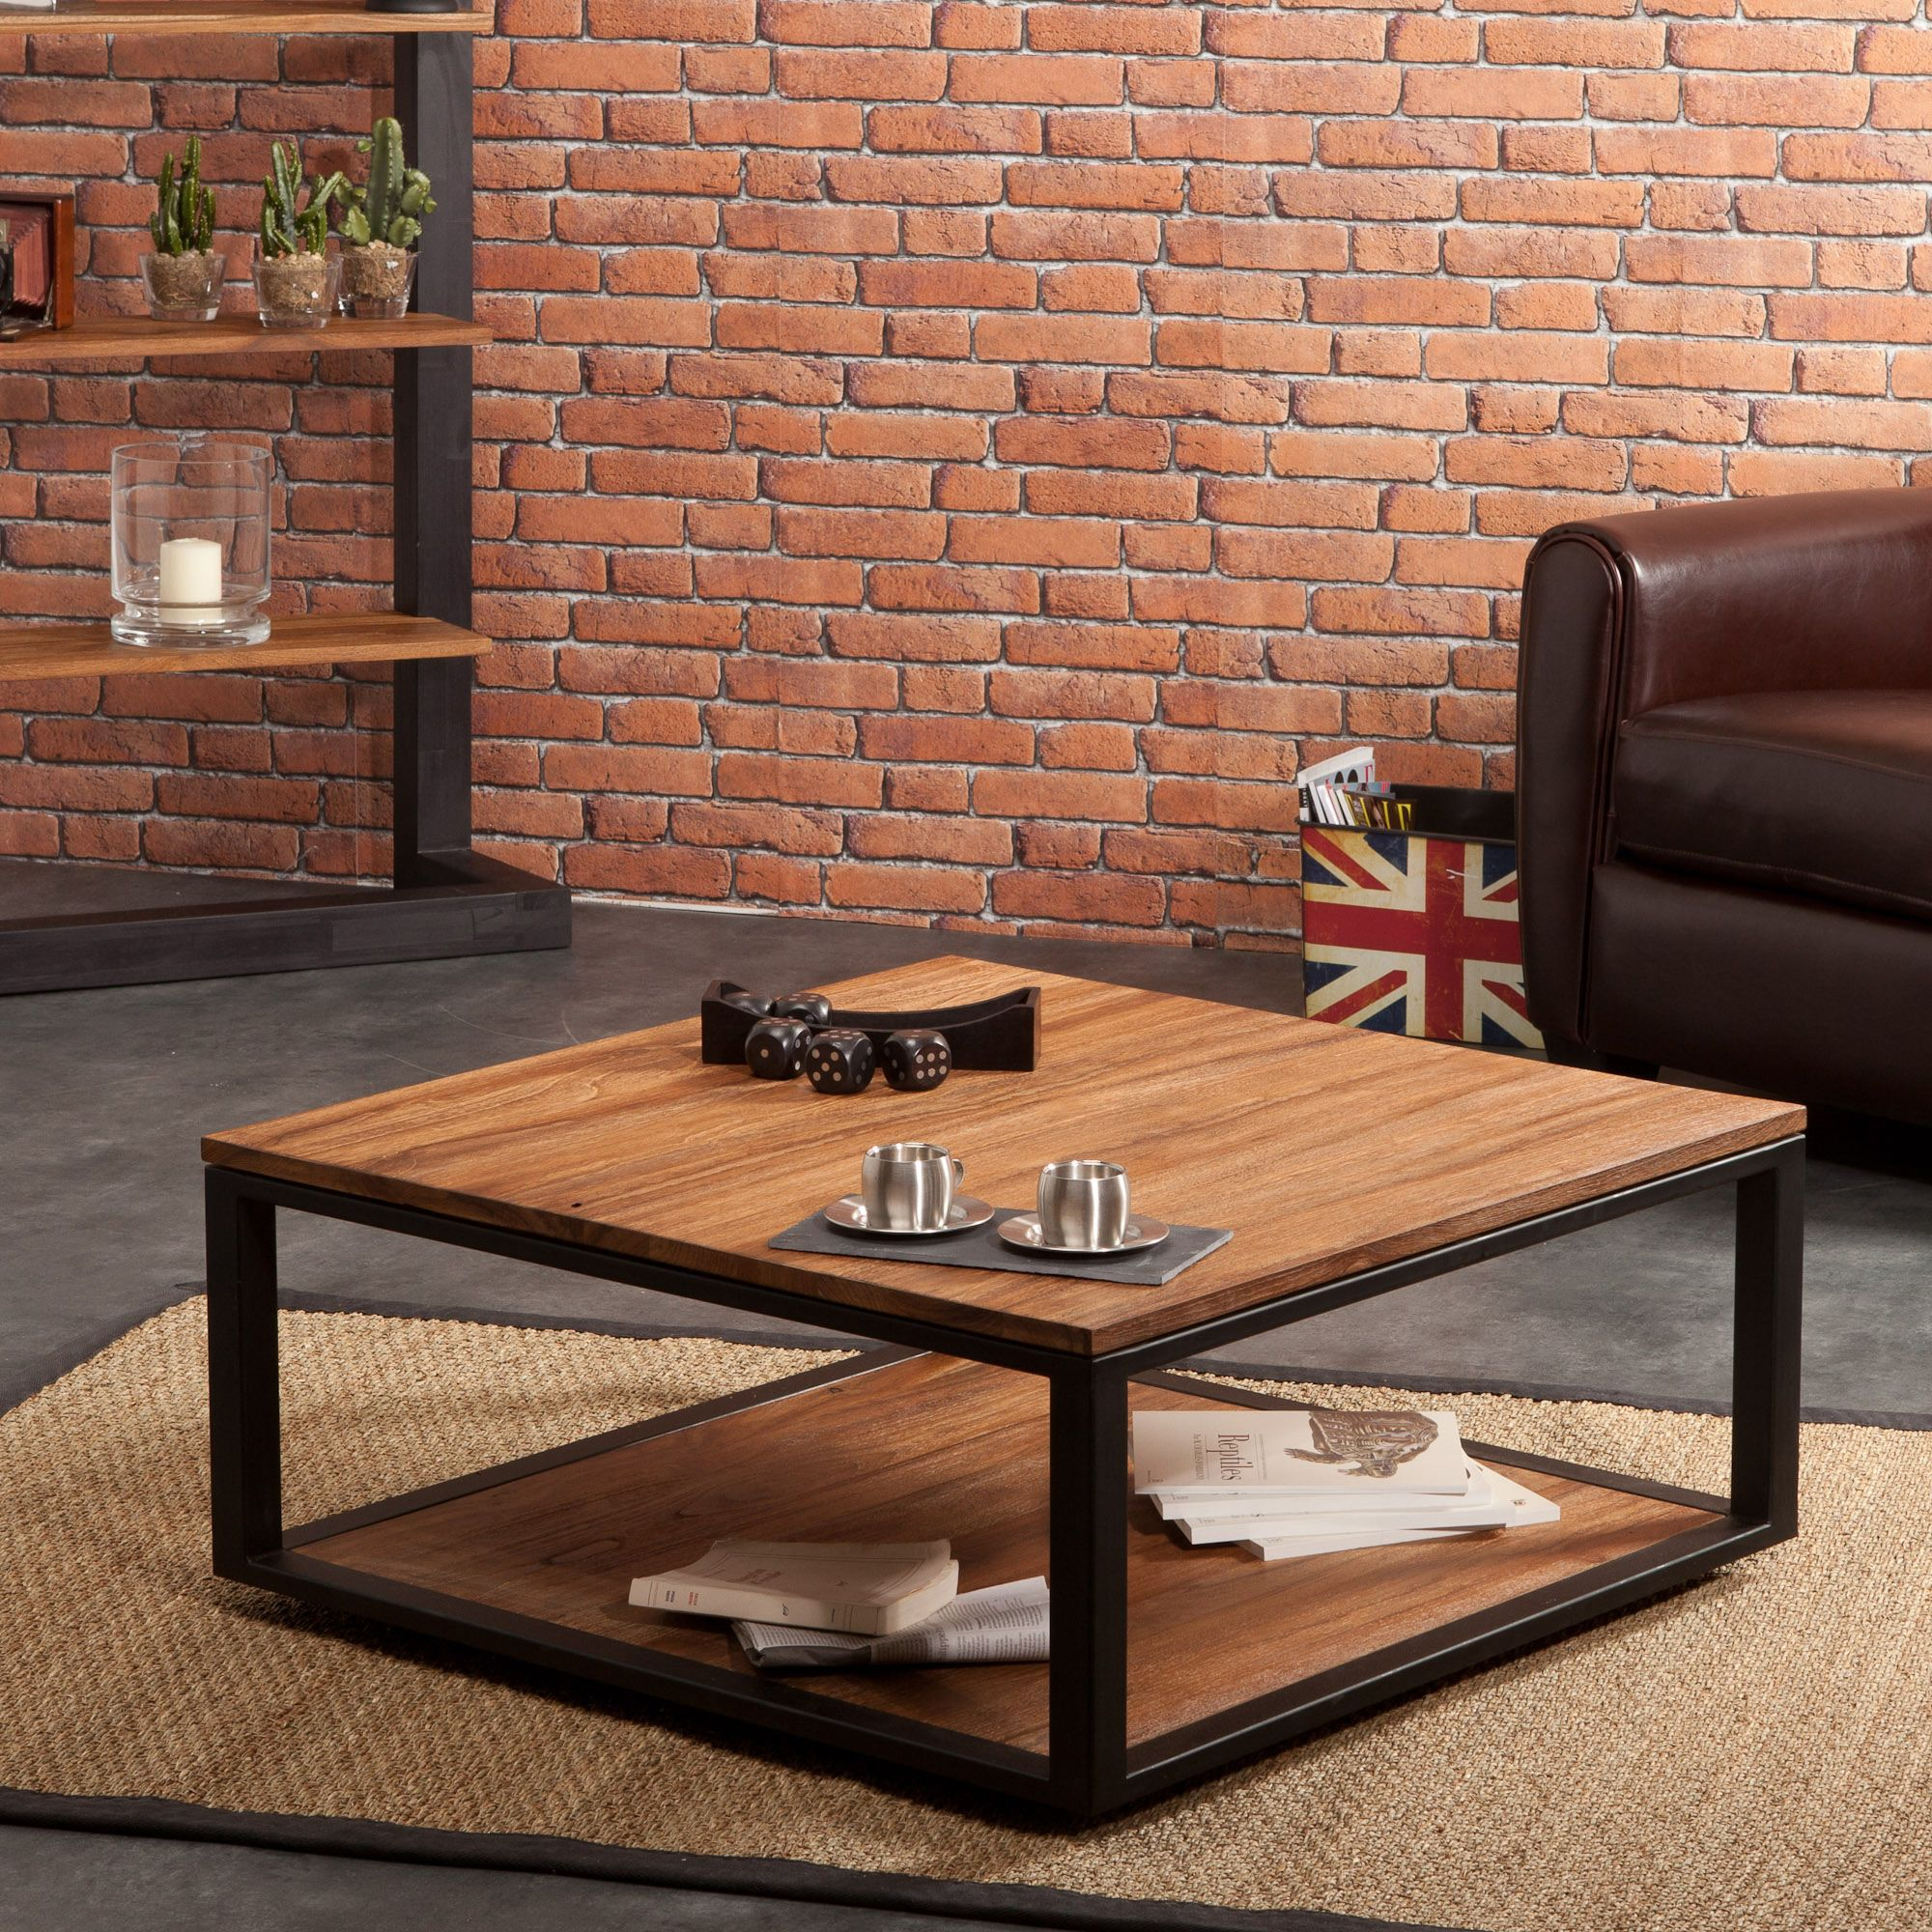 Table Basse Carree En Teck Pieds En Metal Sotra Mobilier